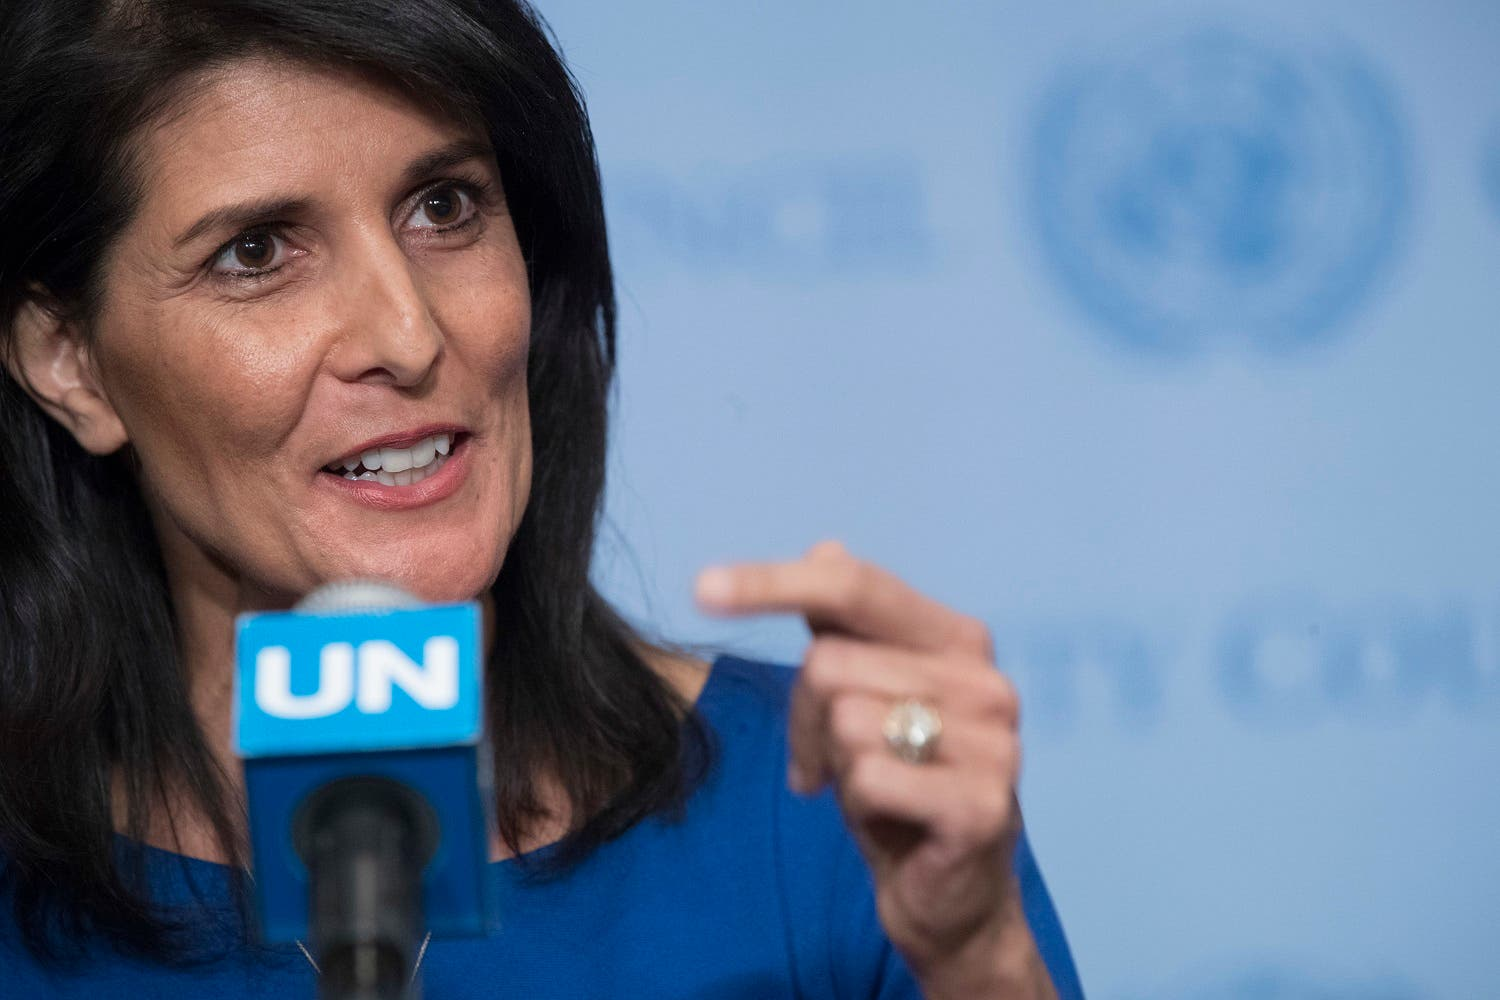 Nikki Haley speaks to reporters after a Security Council meeting on the situation in the Middle East, Thursday, Feb. 16, 2017 at UN headquarters. (AP)